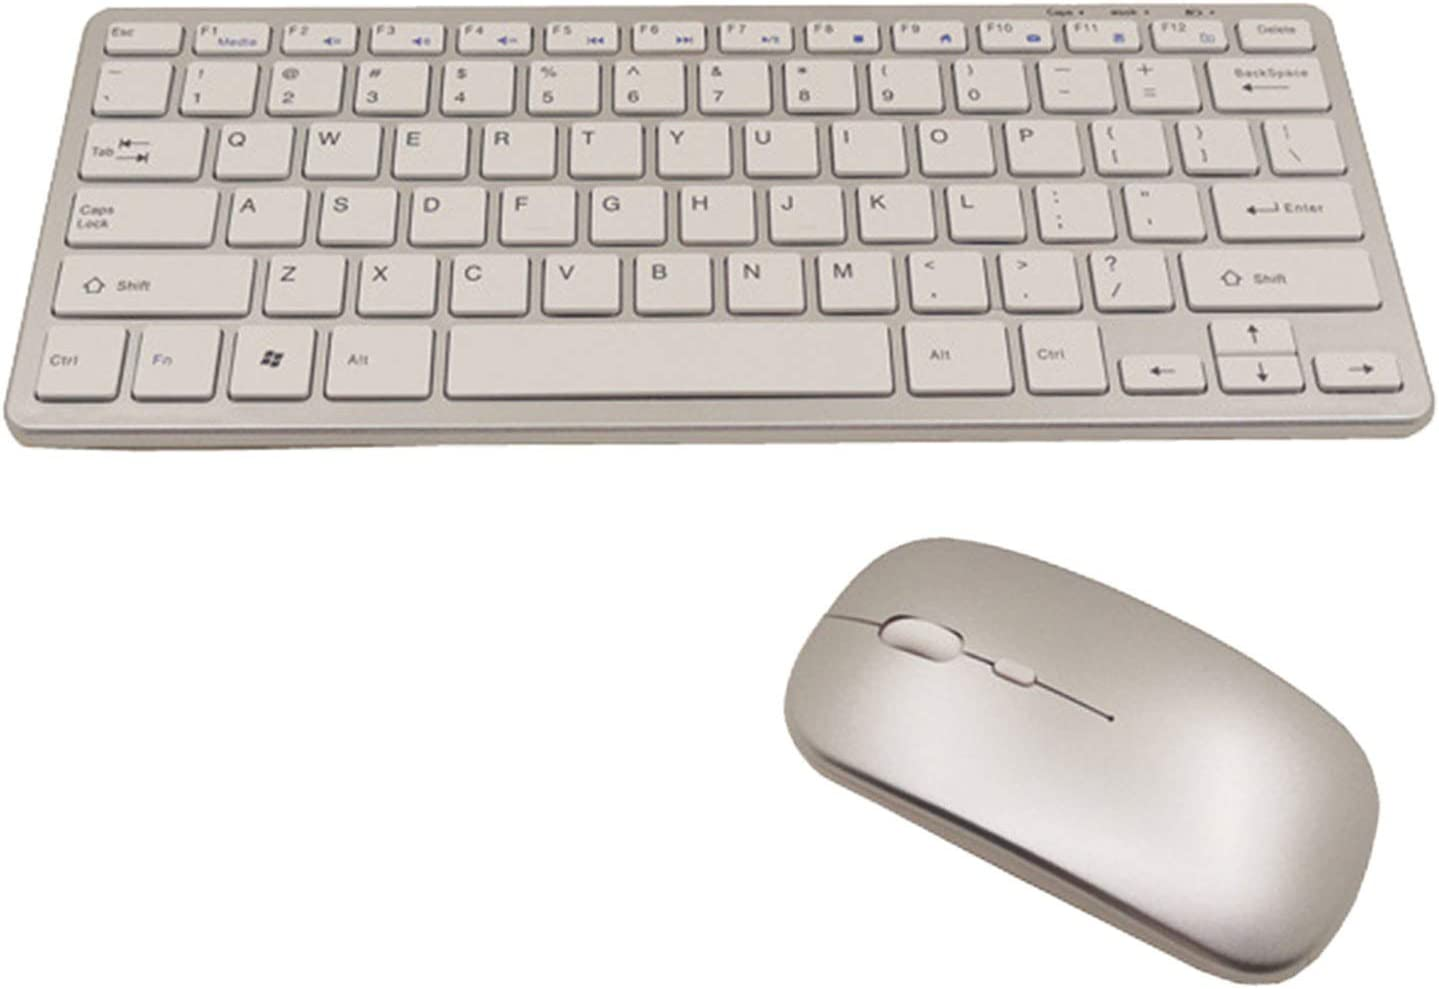 #N A Surprise price Wireless Max 72% OFF Keyboard and Mouse Mo Ultra Set Slim